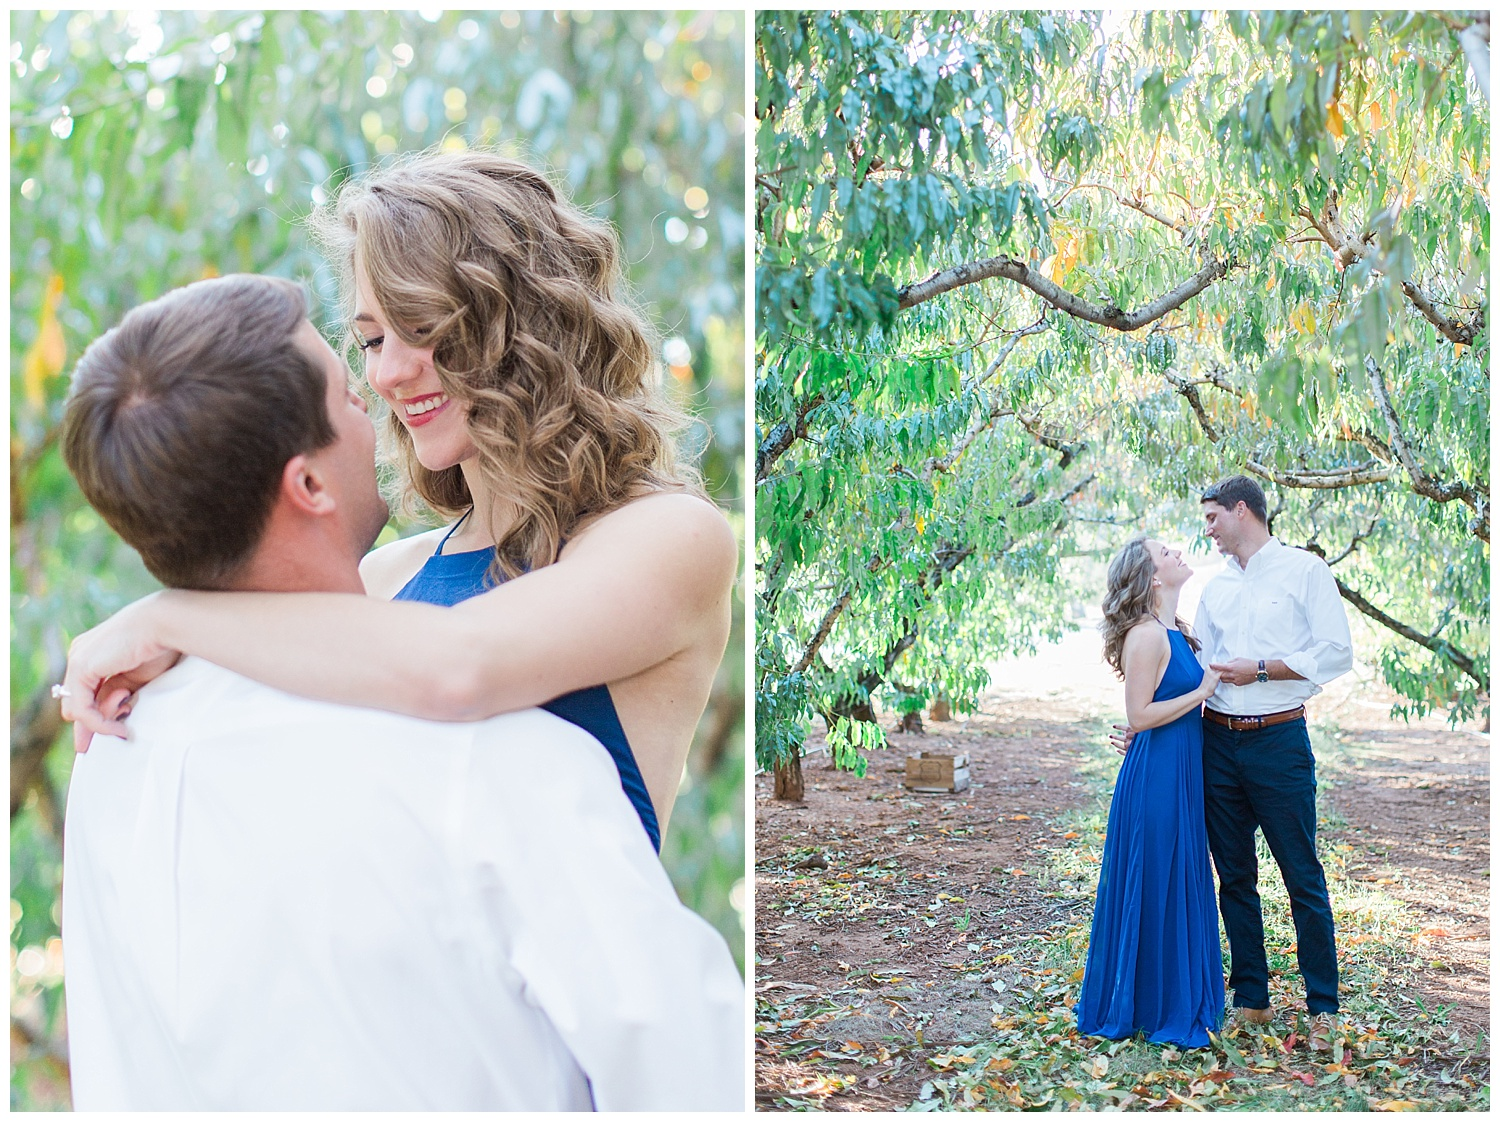 charlottesville_wedding_photographer_chiles_peach_orchard6.jpg